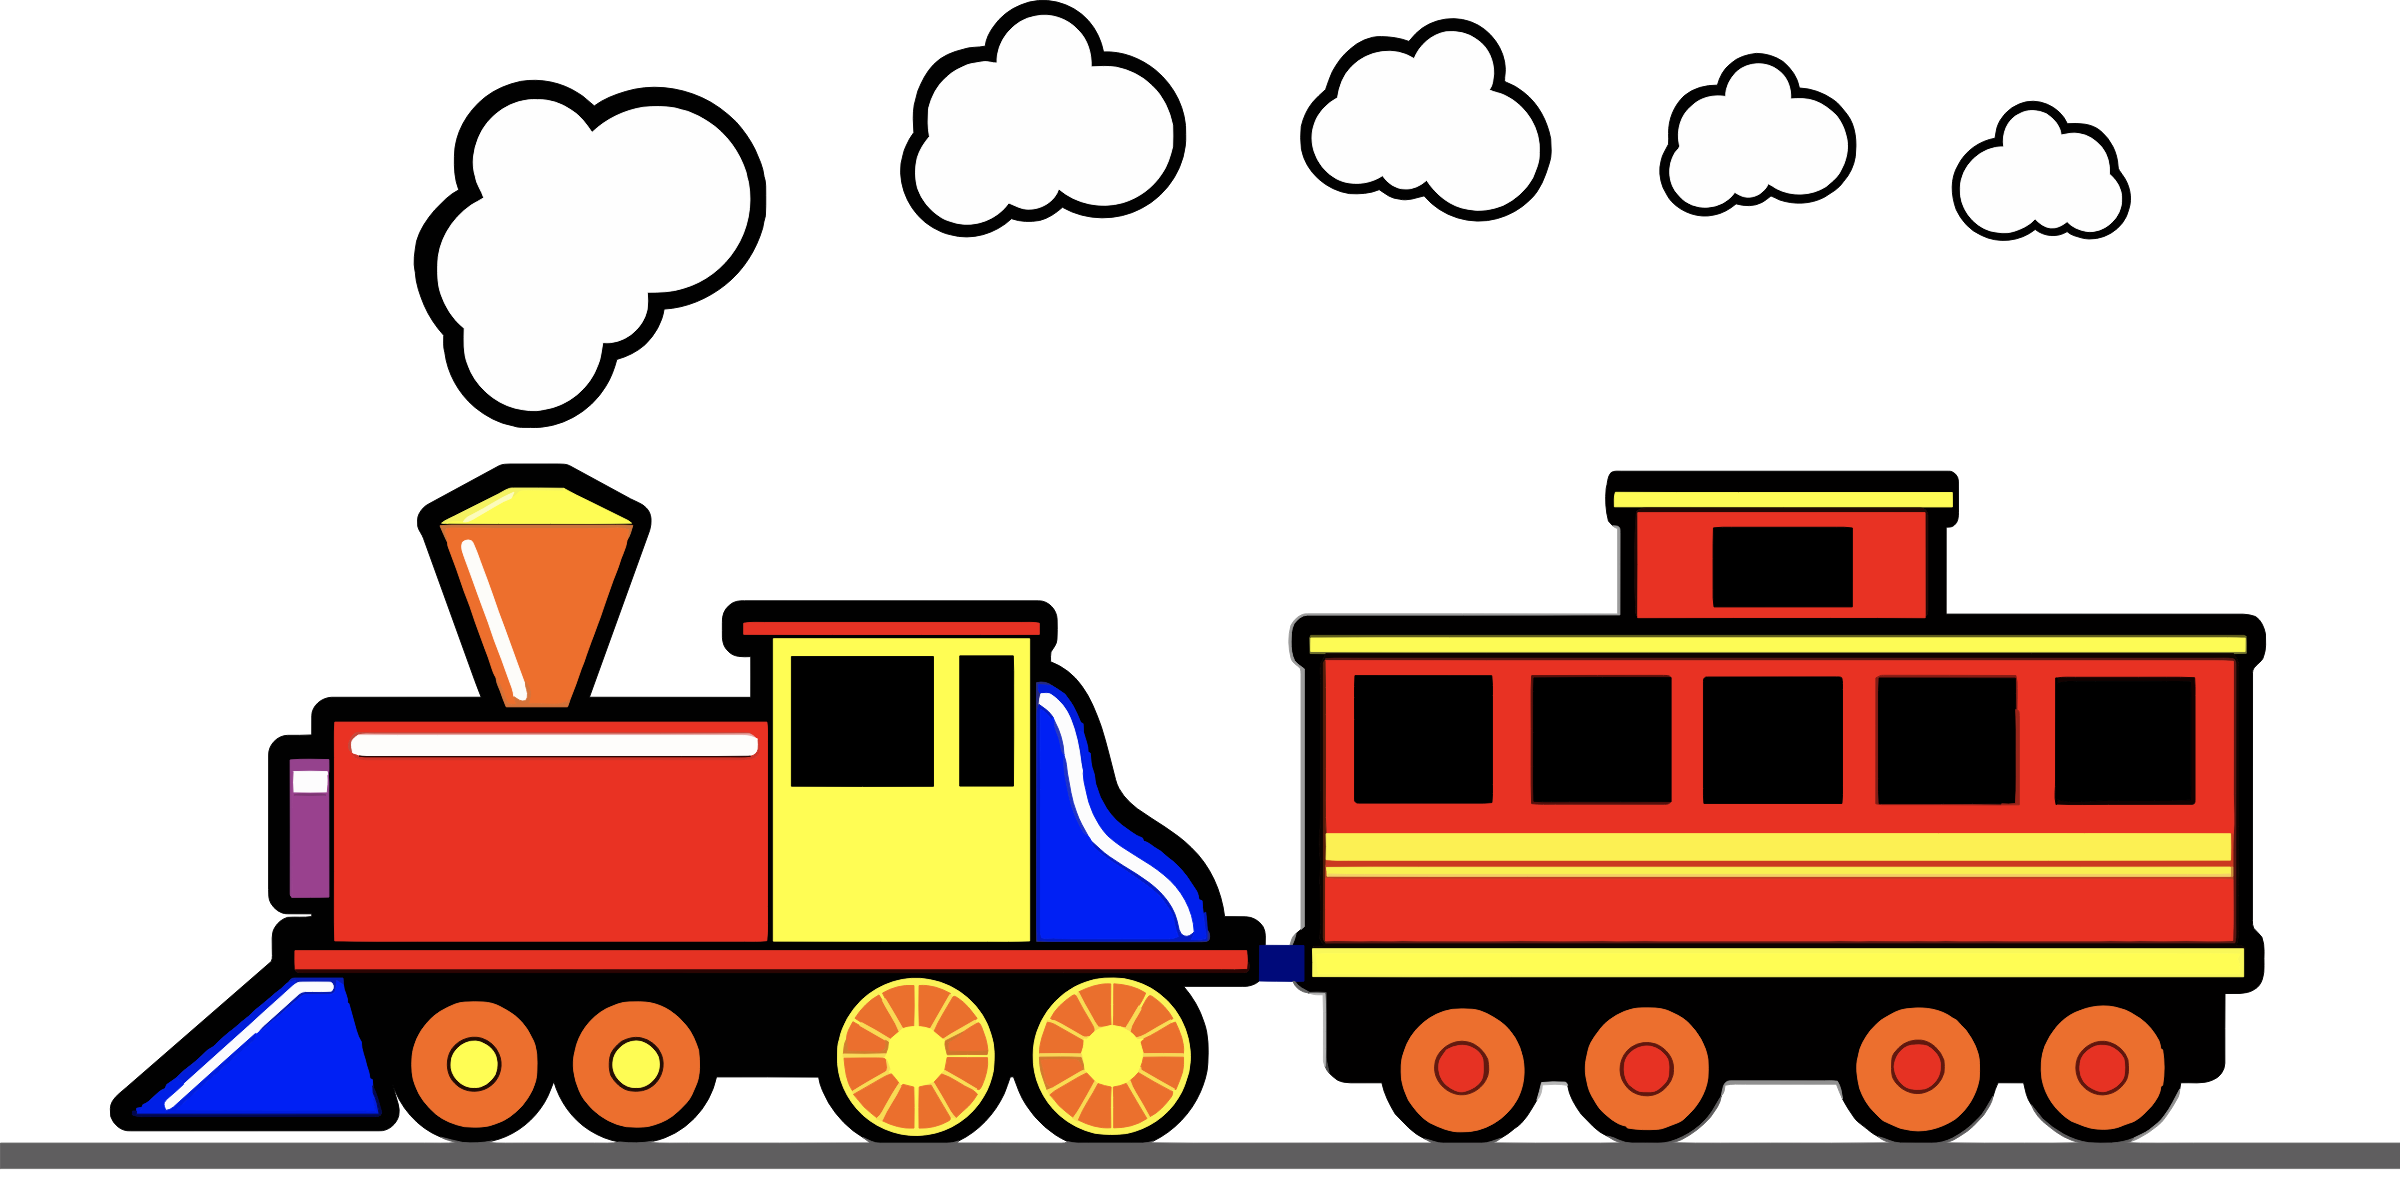 Train smoke clipart banner free library HD Toy Trains Clipart 3 Clip Art Train - Train Smoke Cartoon ... banner free library